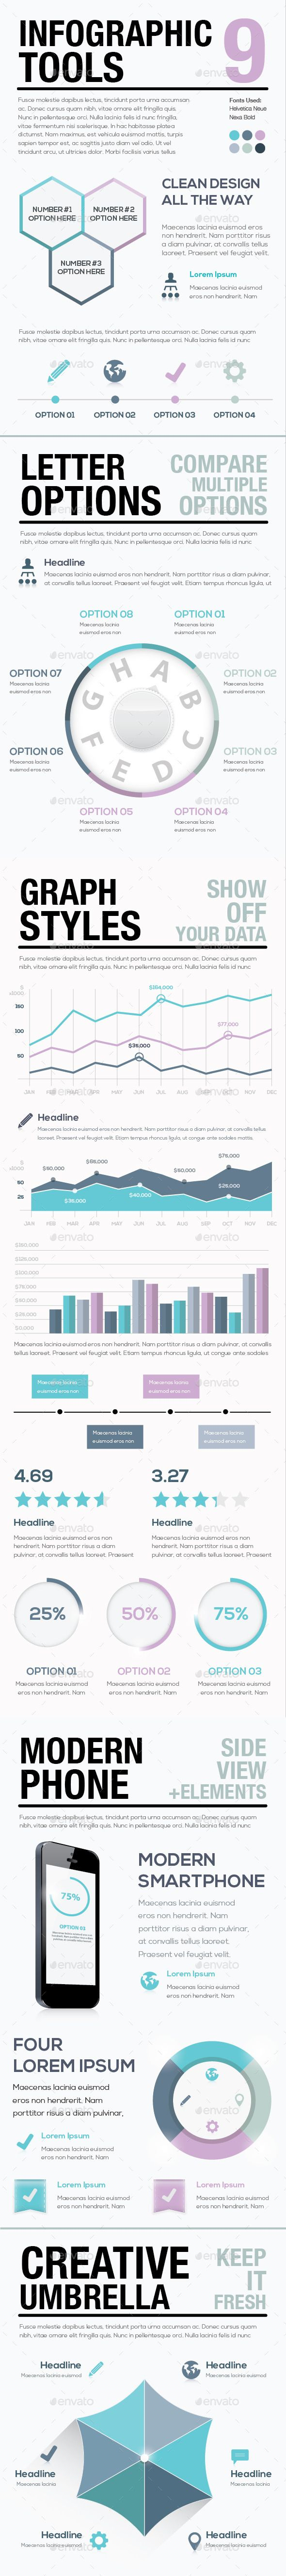 Infographic Tools Template #design Download: http://graphicriver.net/item/infographic-tools-9/9262811?ref=ksioks